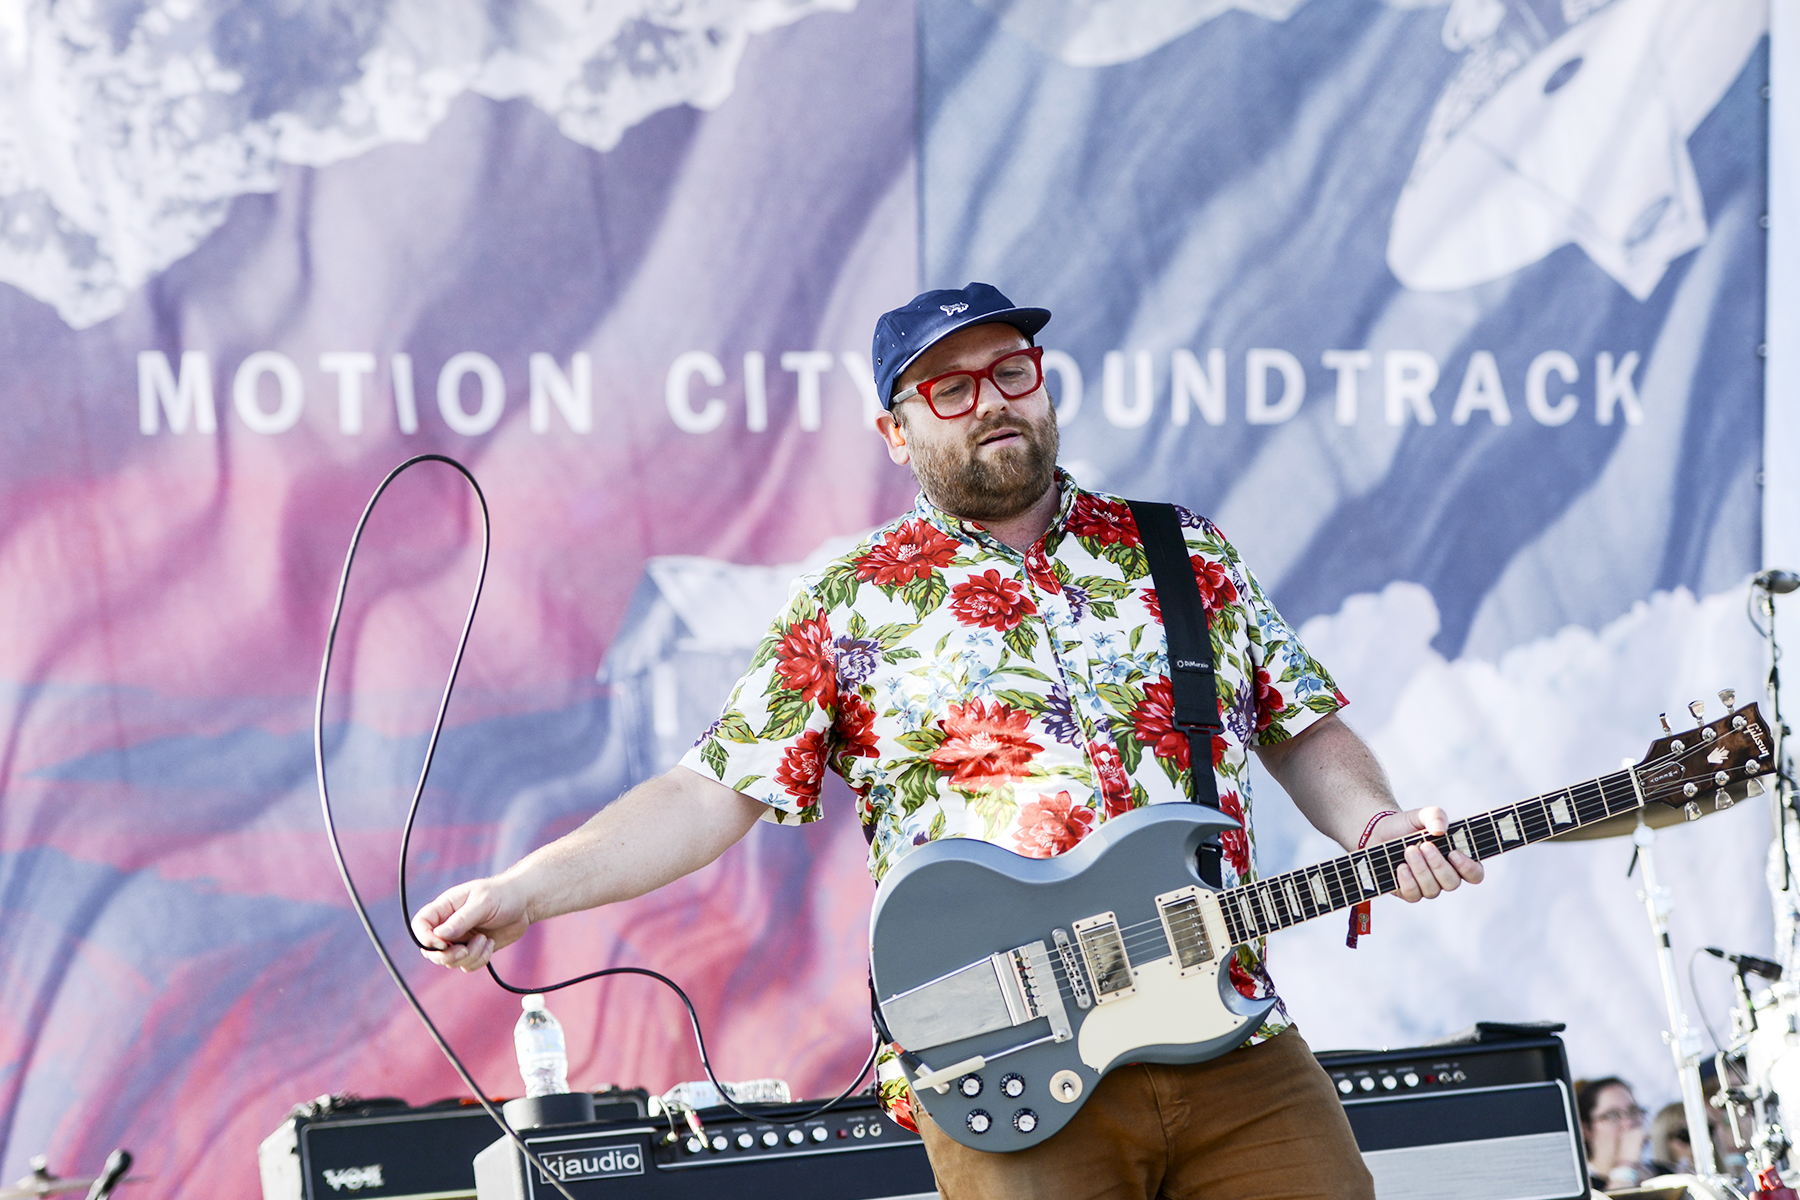 Motion City_WB5.jpg